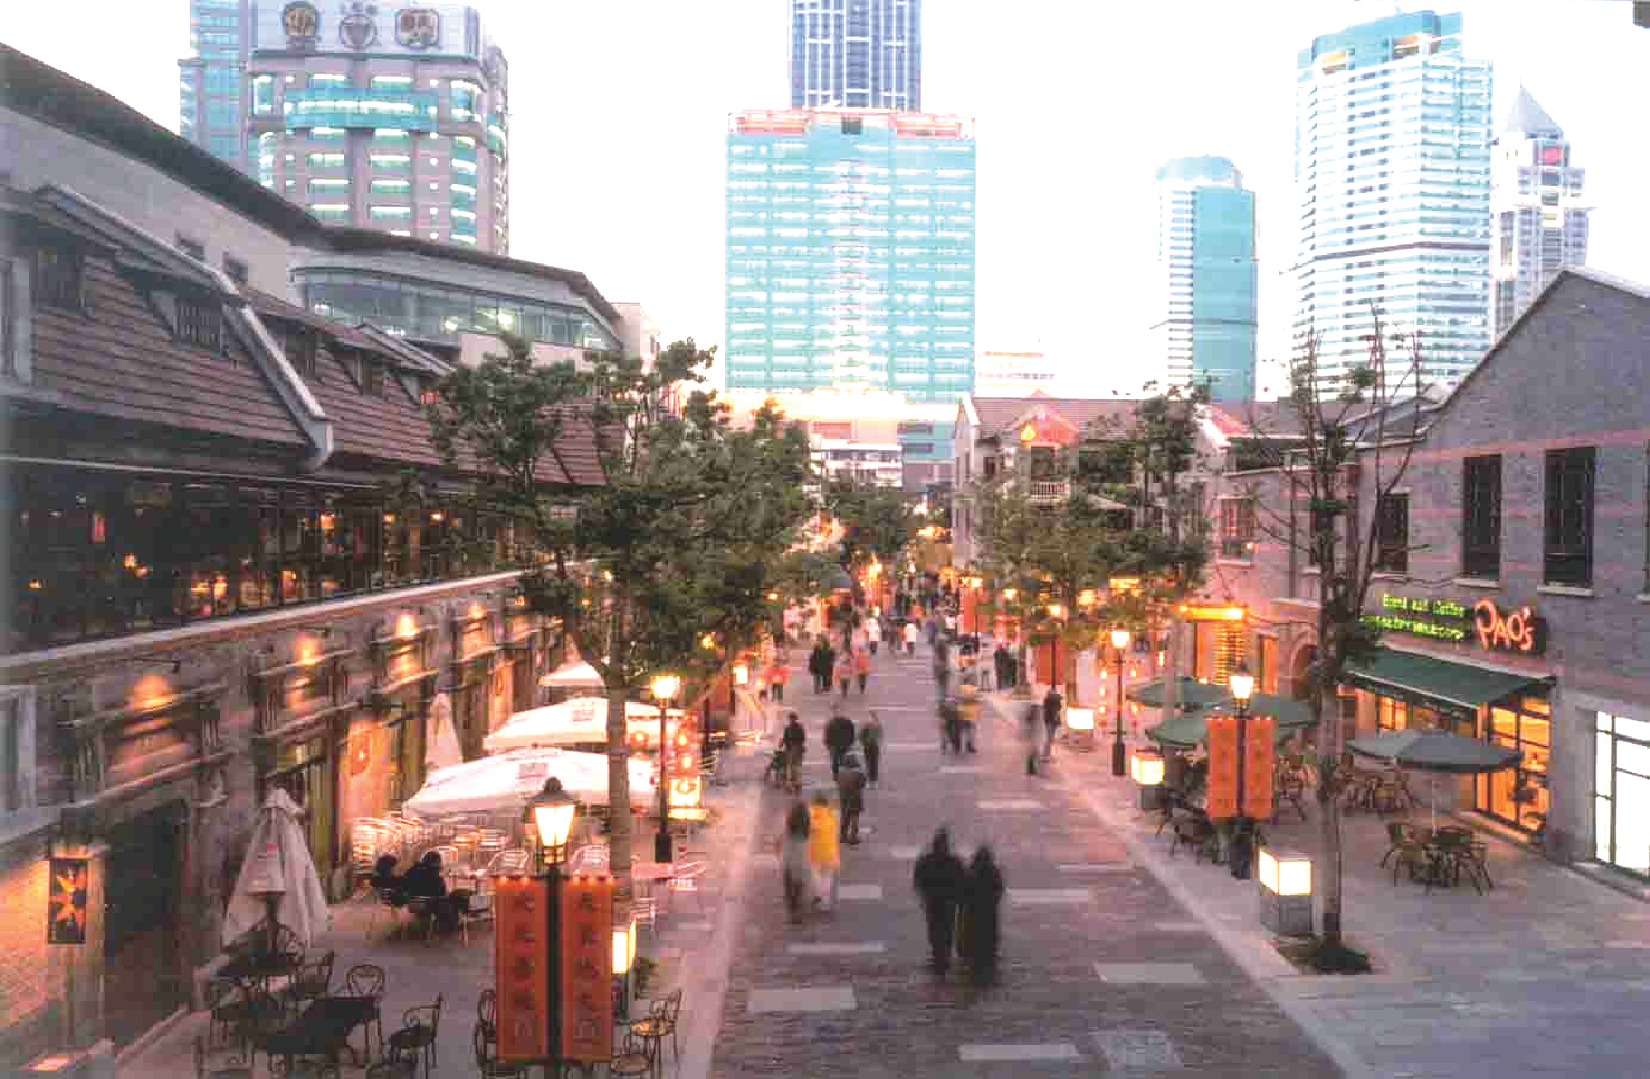 A Political Economy Analysis of Urban Redevelopment and its Socio-spatial Consequences in China